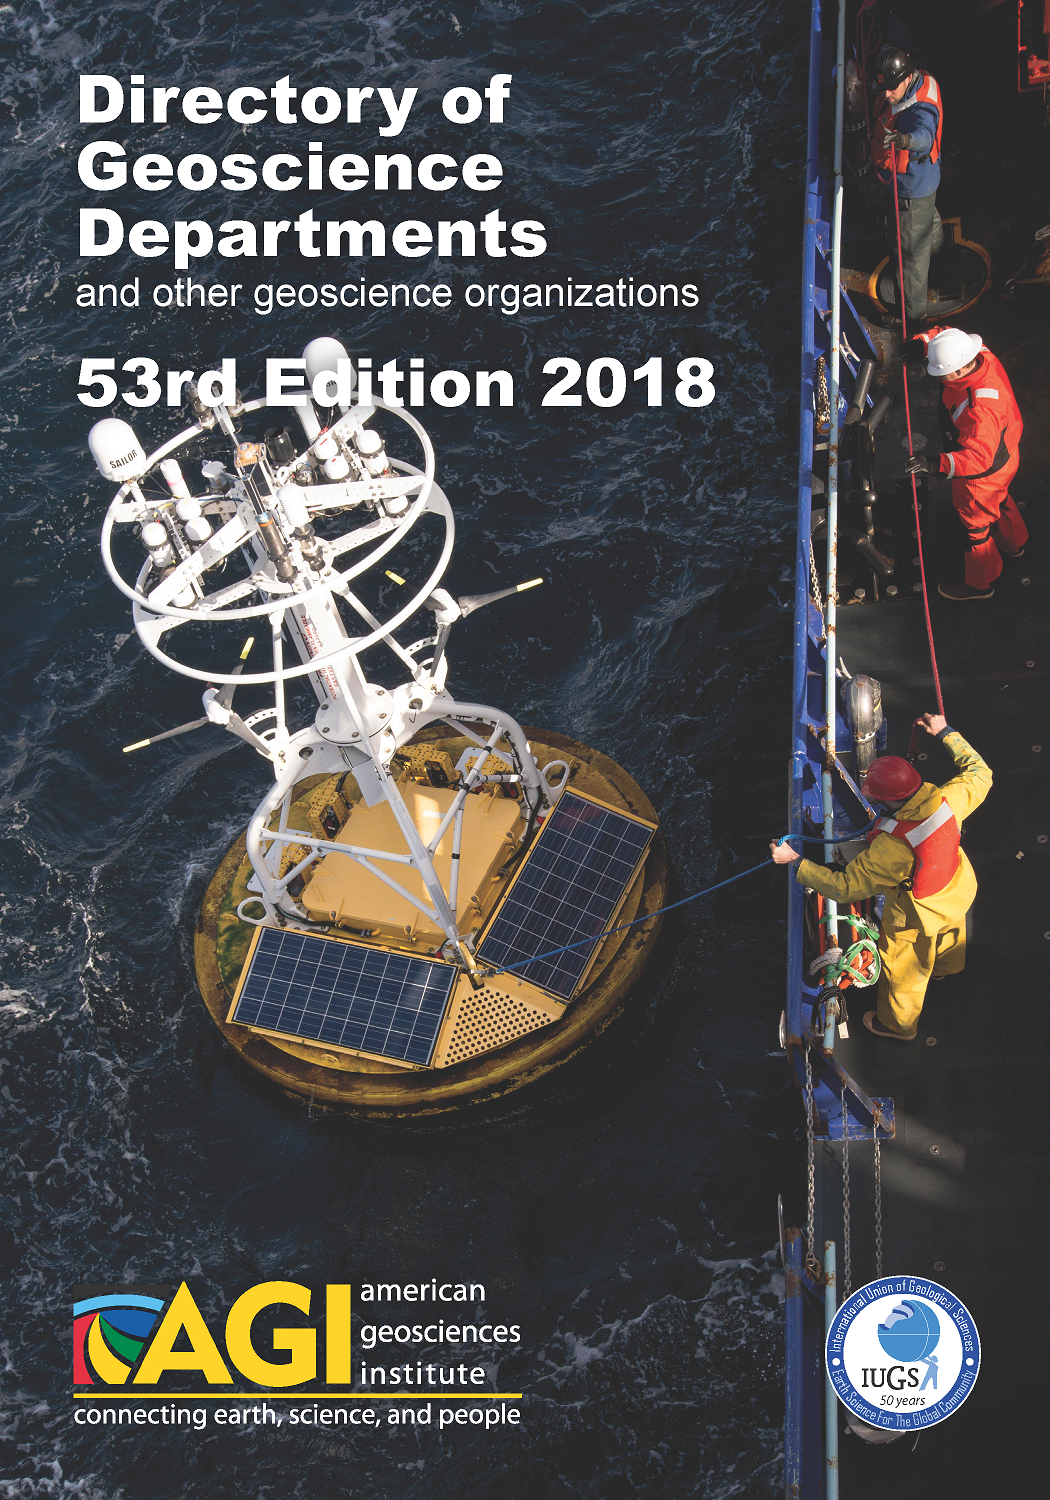 Cover of AGI's Directory of Geoscience Departments.